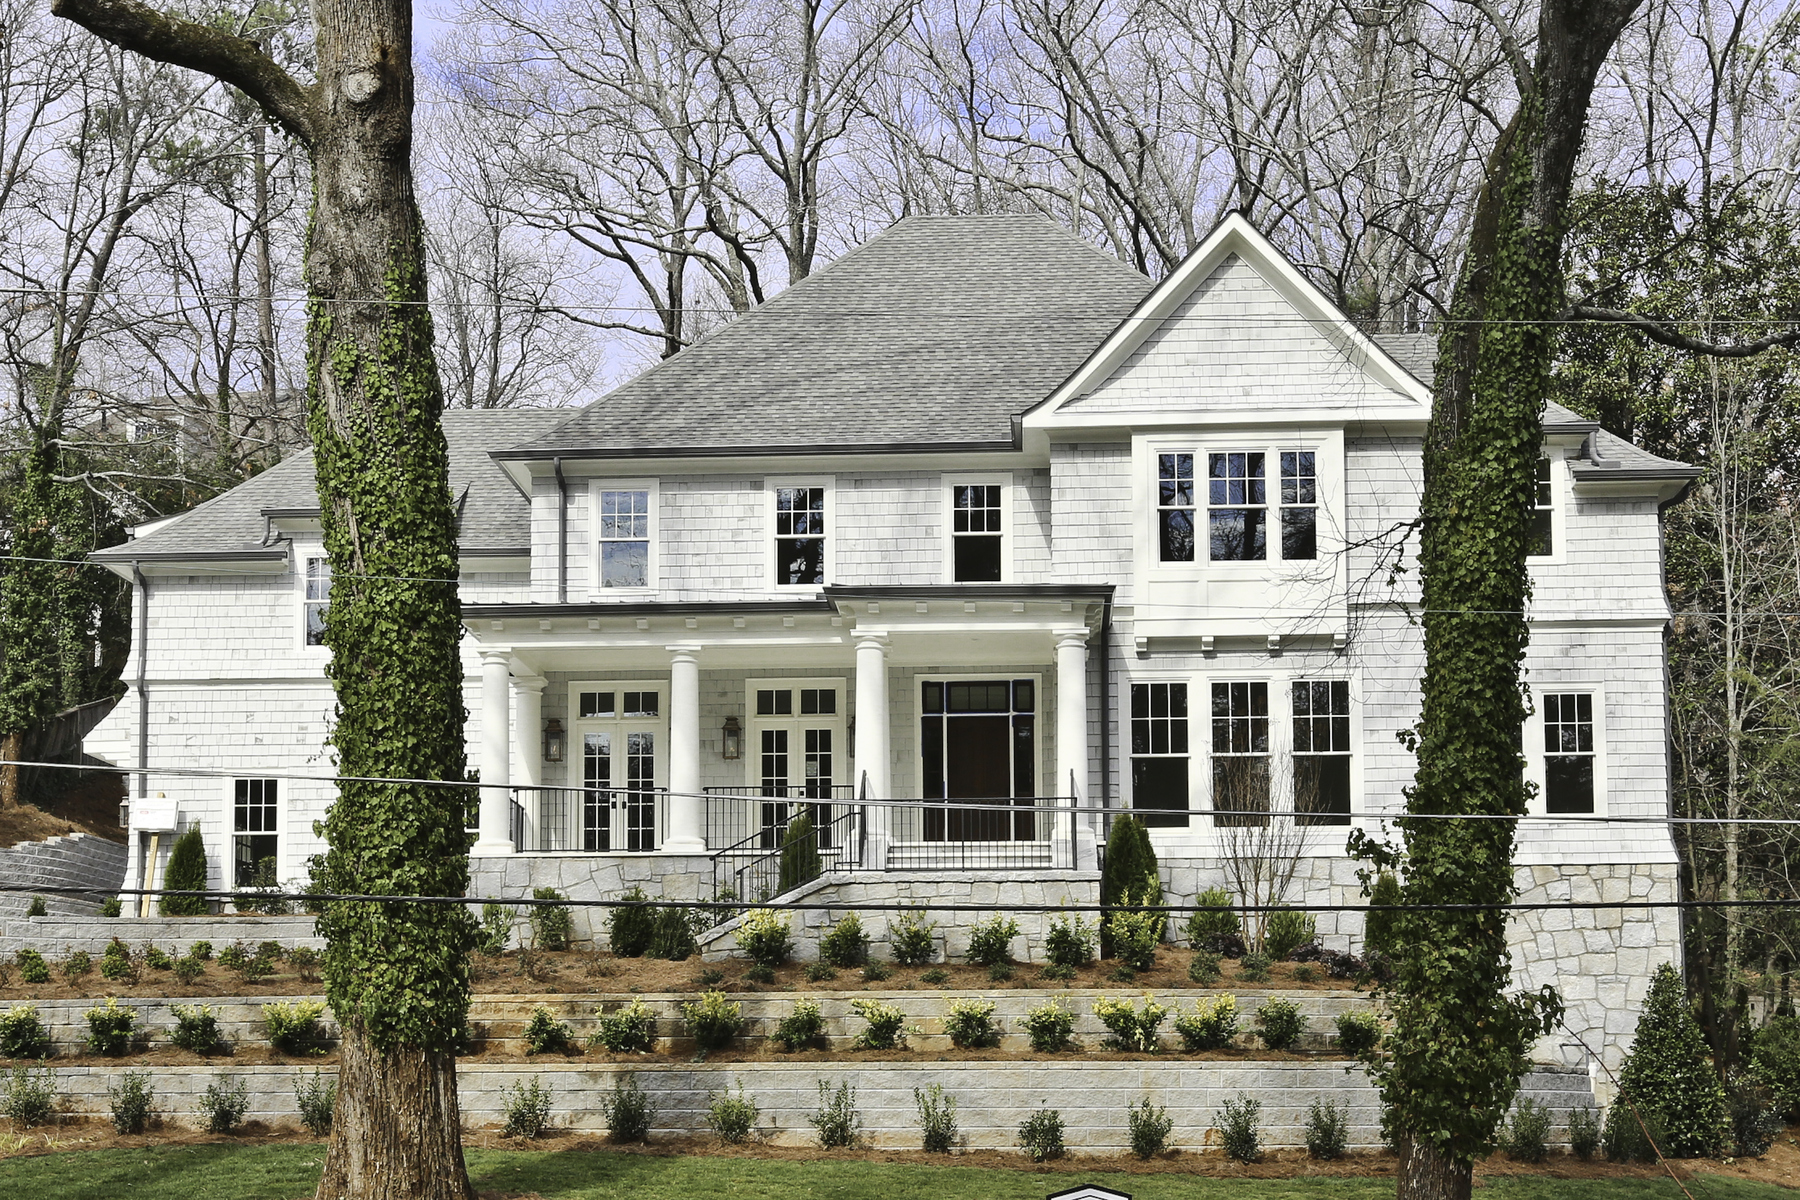 Enfamiljshus för Försäljning vid Deluxe Custom New Construction by Jackbilt Homes on Sought-After Street 479 Argonne Drive NW Atlanta, Georgien 30305 Usa